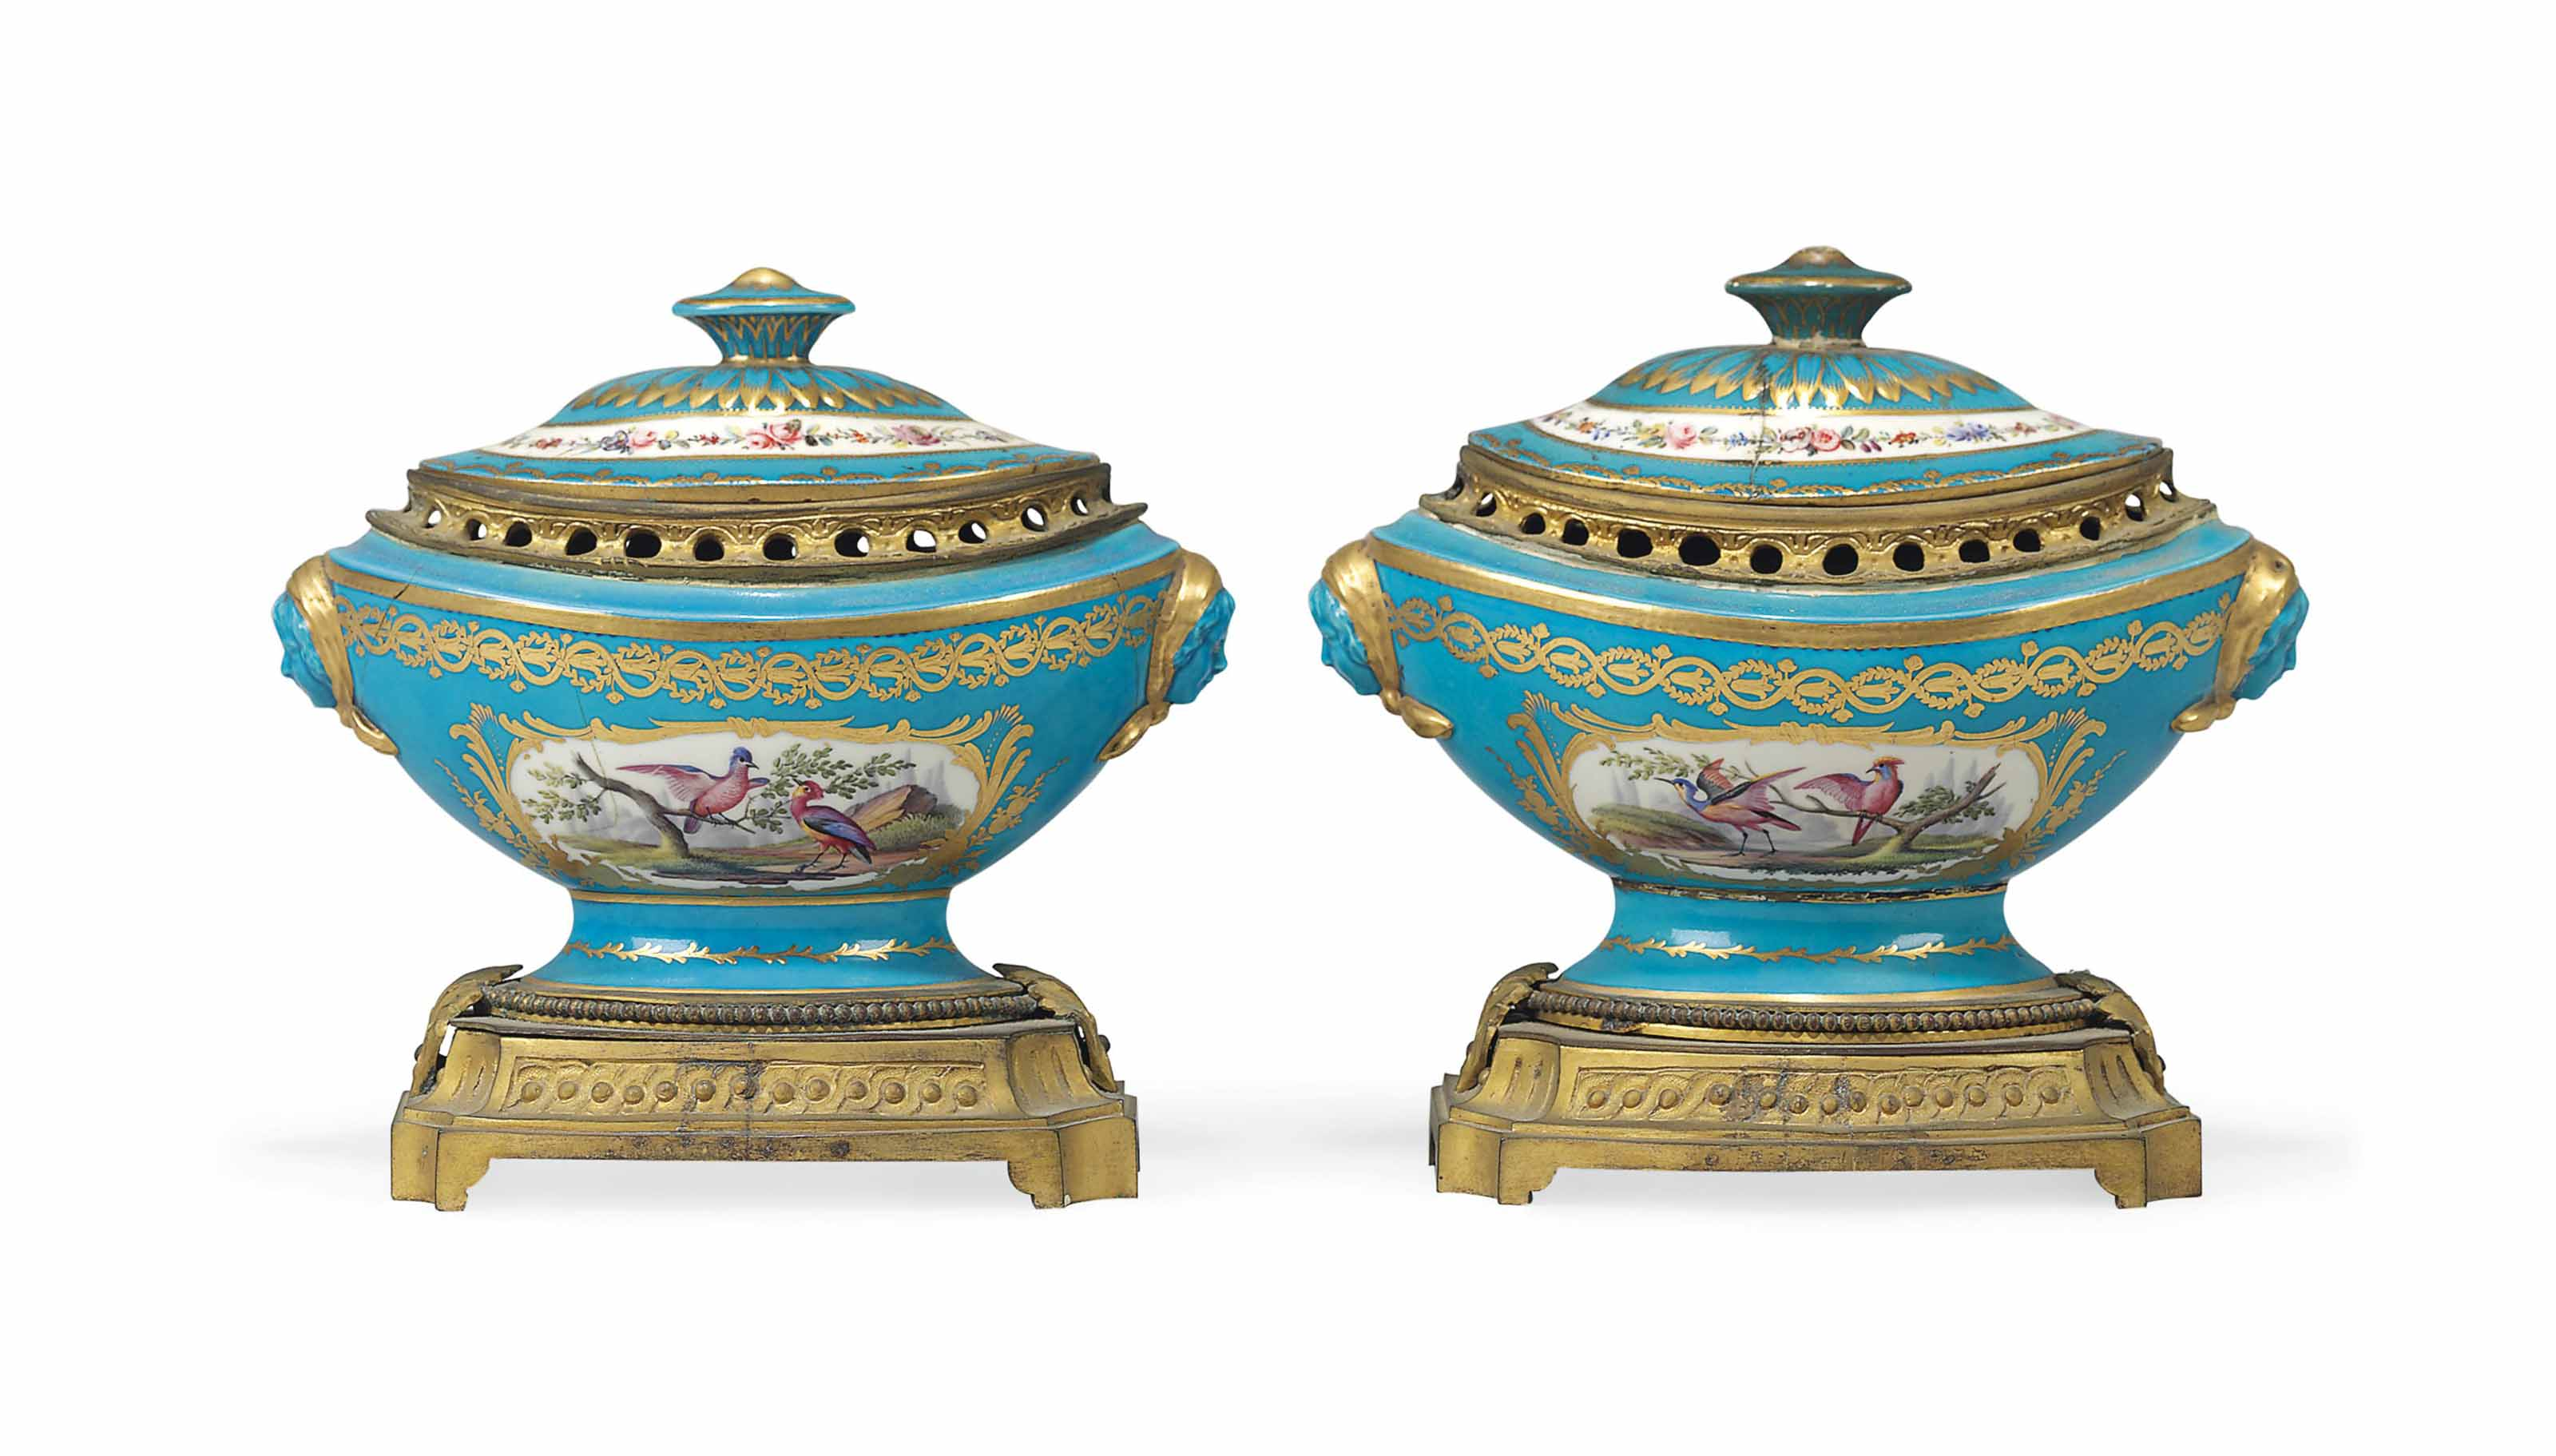 A PAIR OF ORMOLU-MOUNTED SEVRES-STYLE TURQUOISE-GROUND NAVETTE-SHAPED POT-POURRI VASES AND COVERS